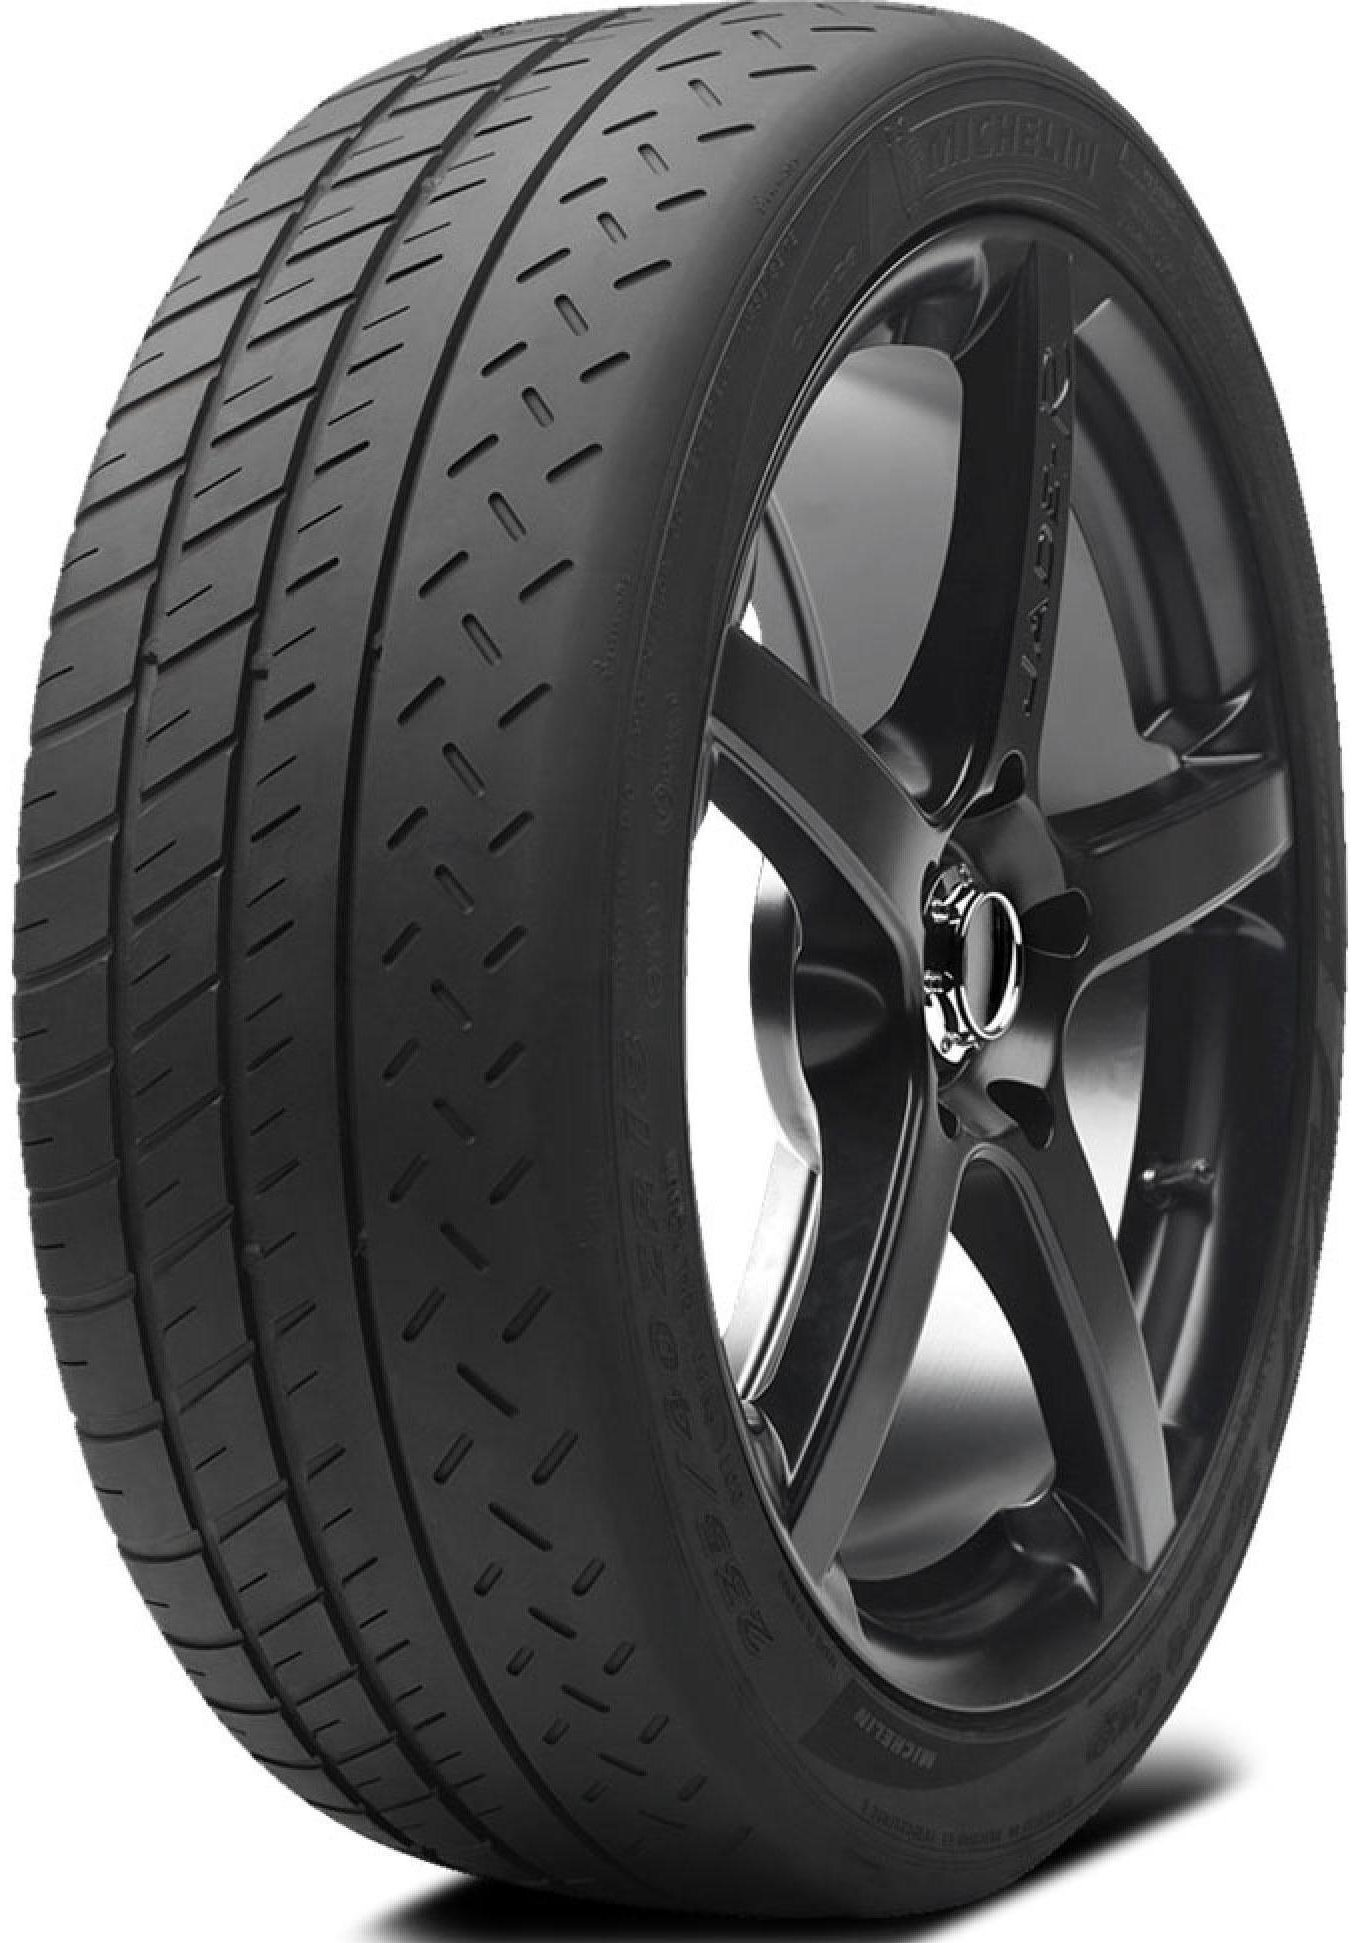 MICHELIN PILOT SPORT CUP 335 25 R 20 94Y